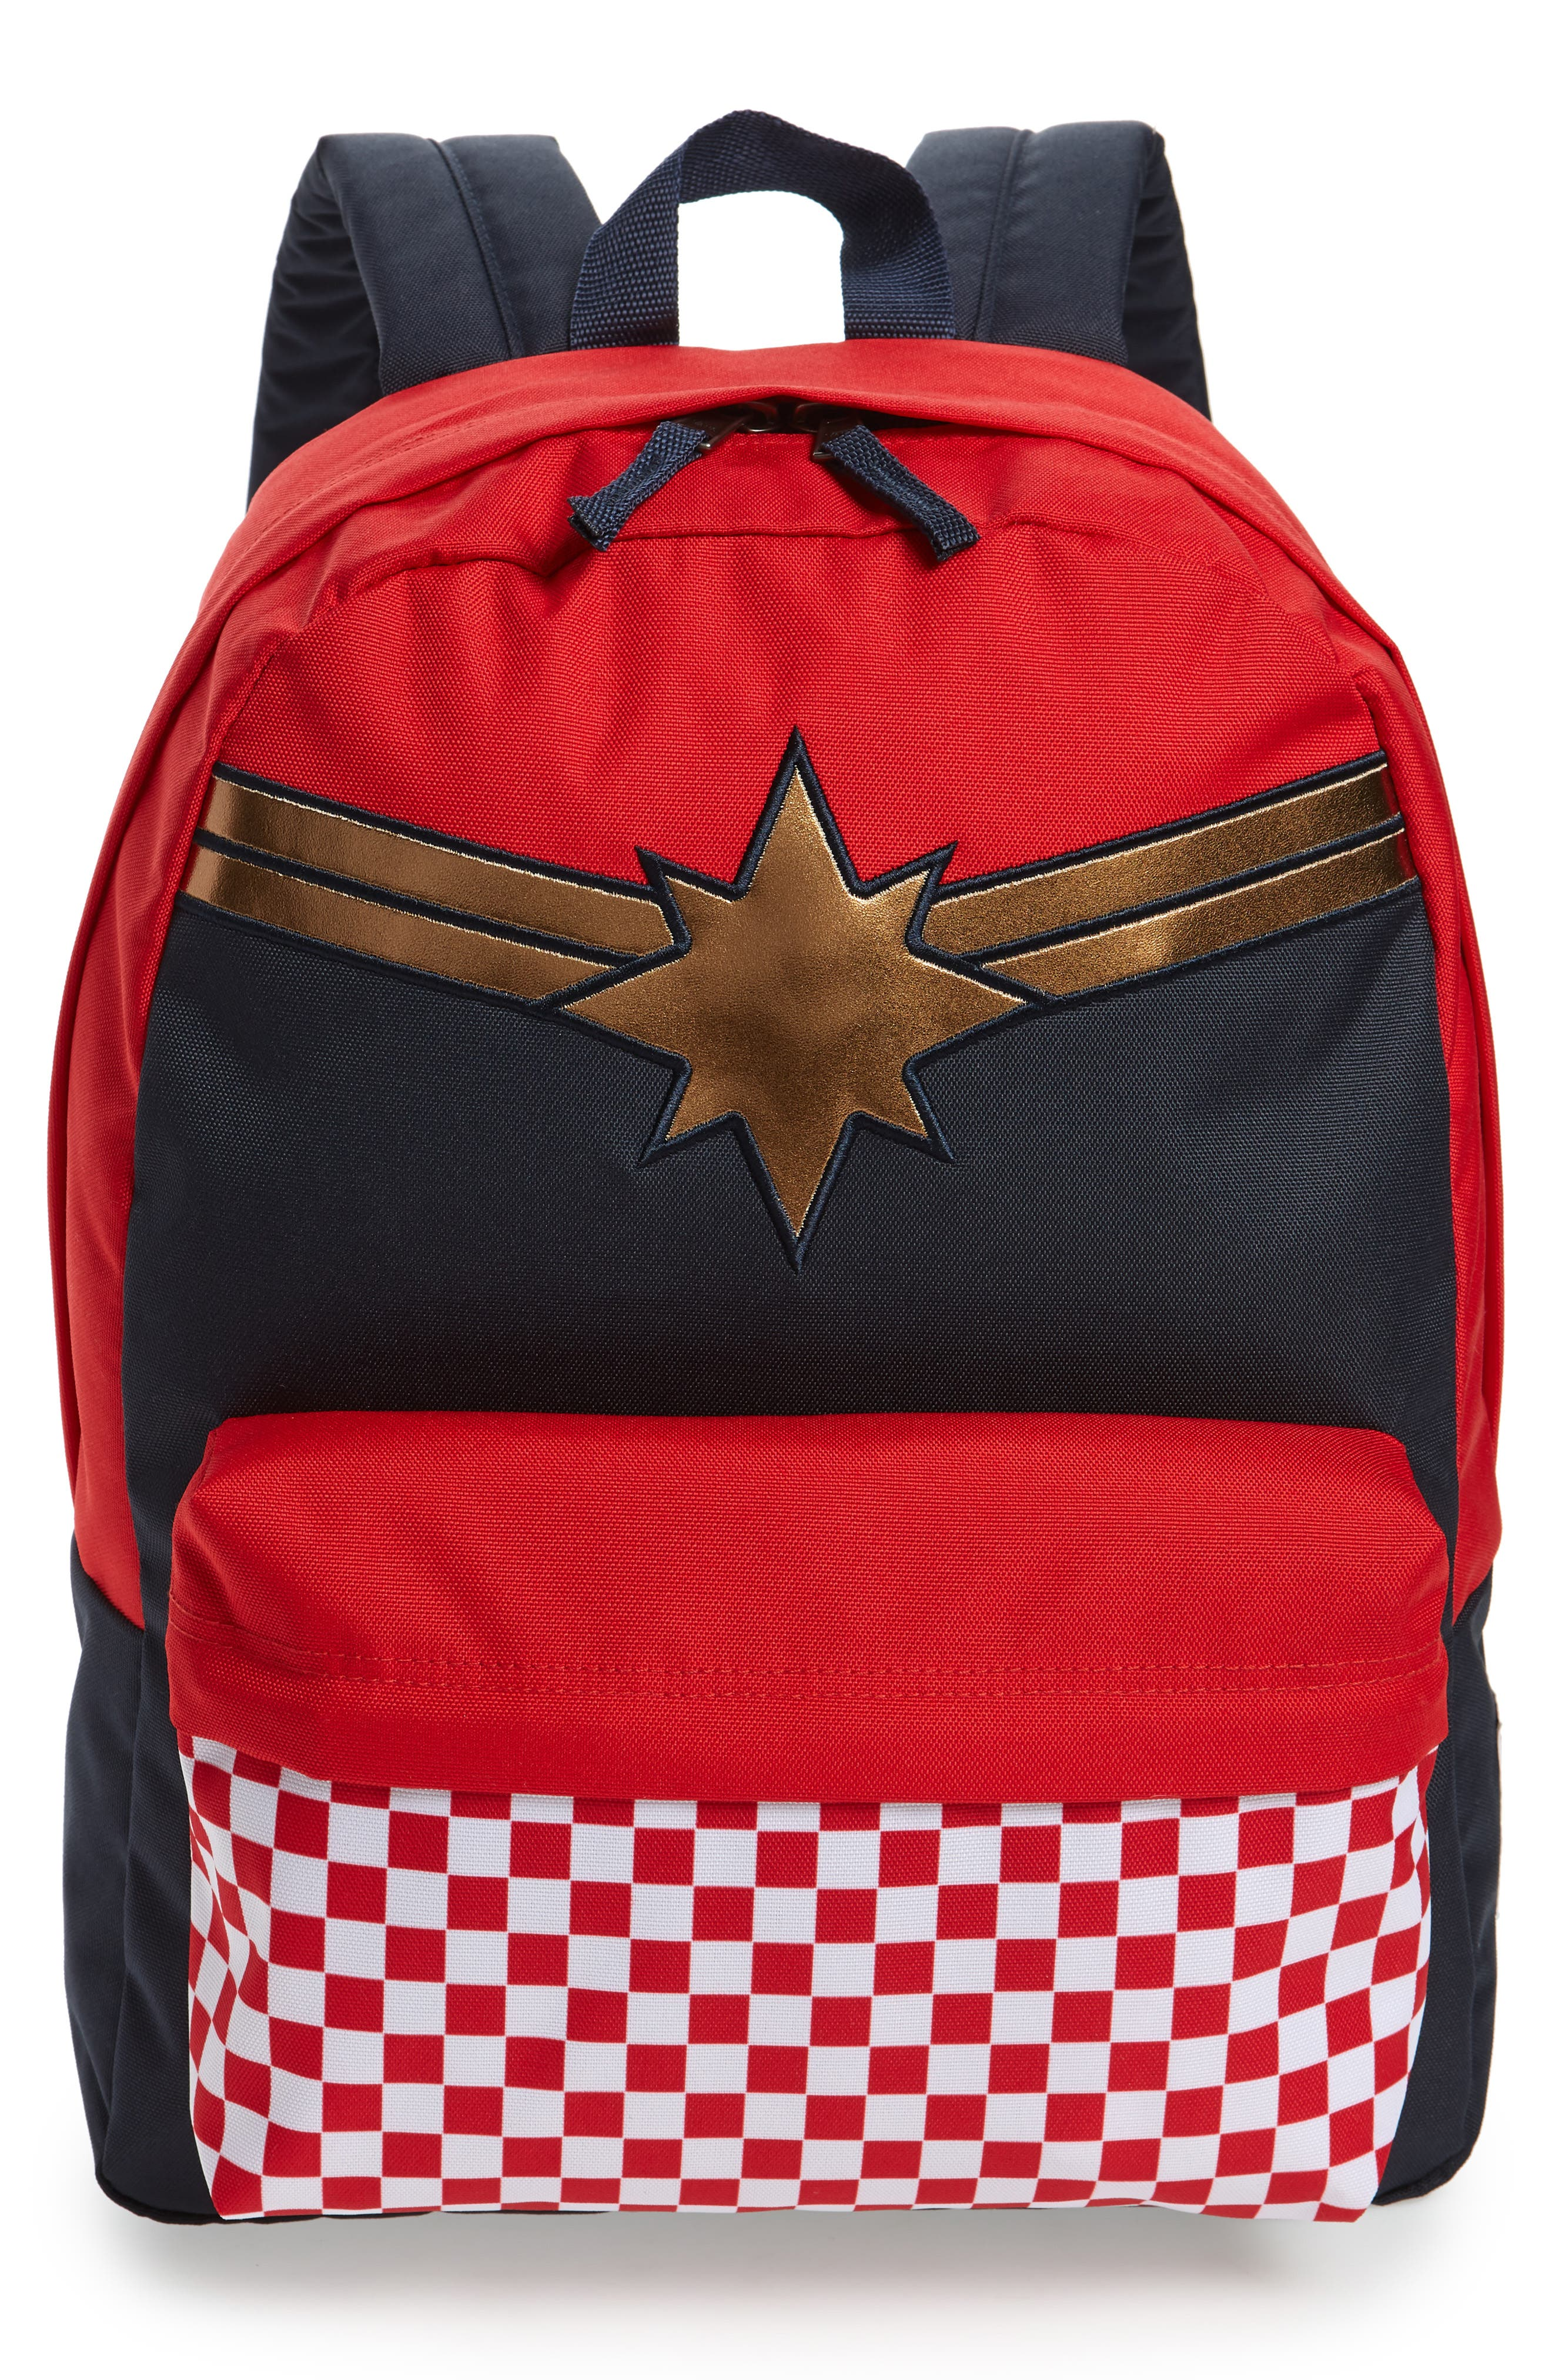 x Marvel<sup>®</sup> Captain Marvel Realm Backpack,                             Main thumbnail 1, color,                             601